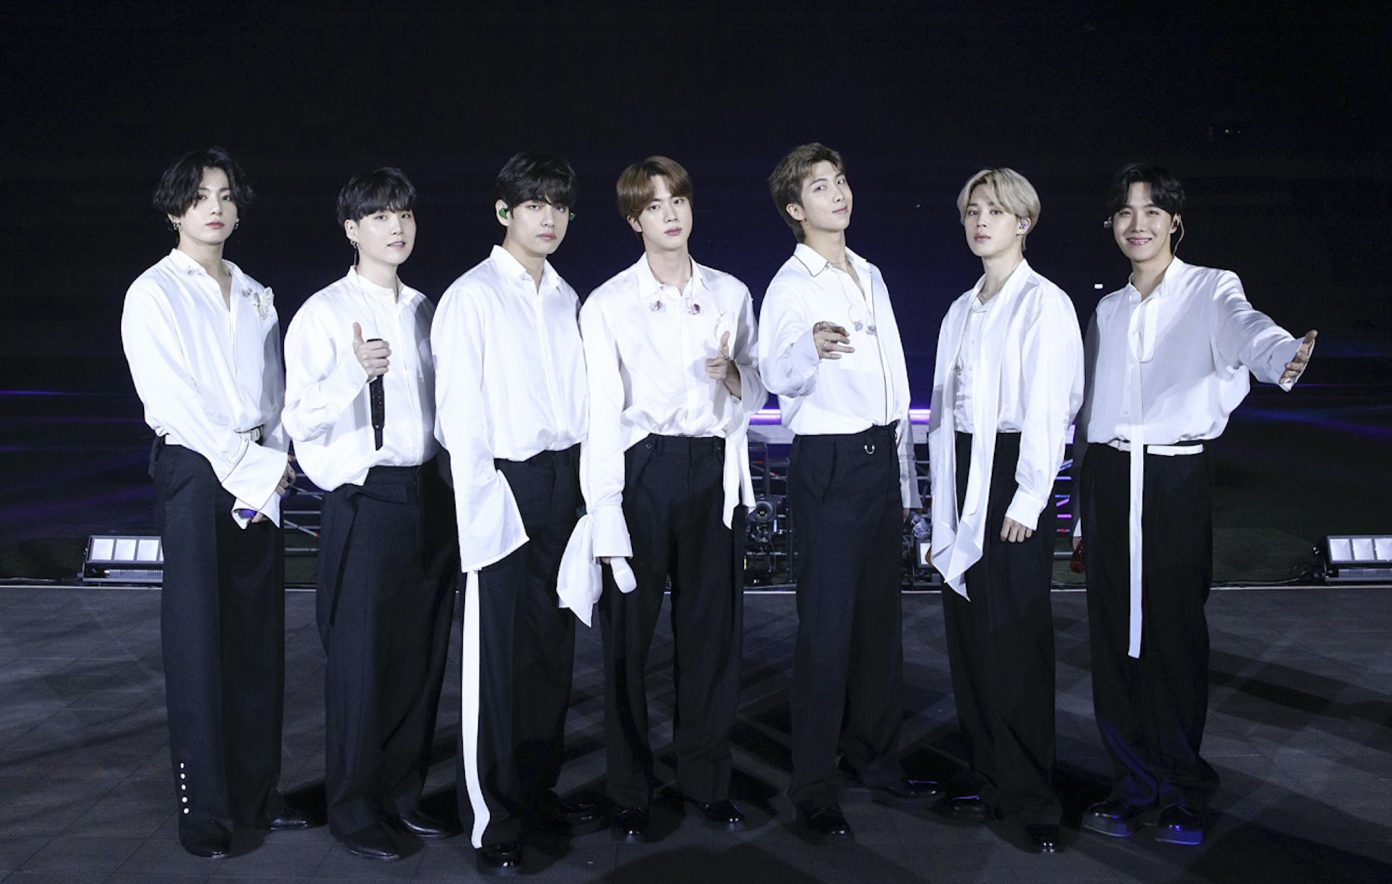 bts-wins-favorite-group-american-music-awards-2020